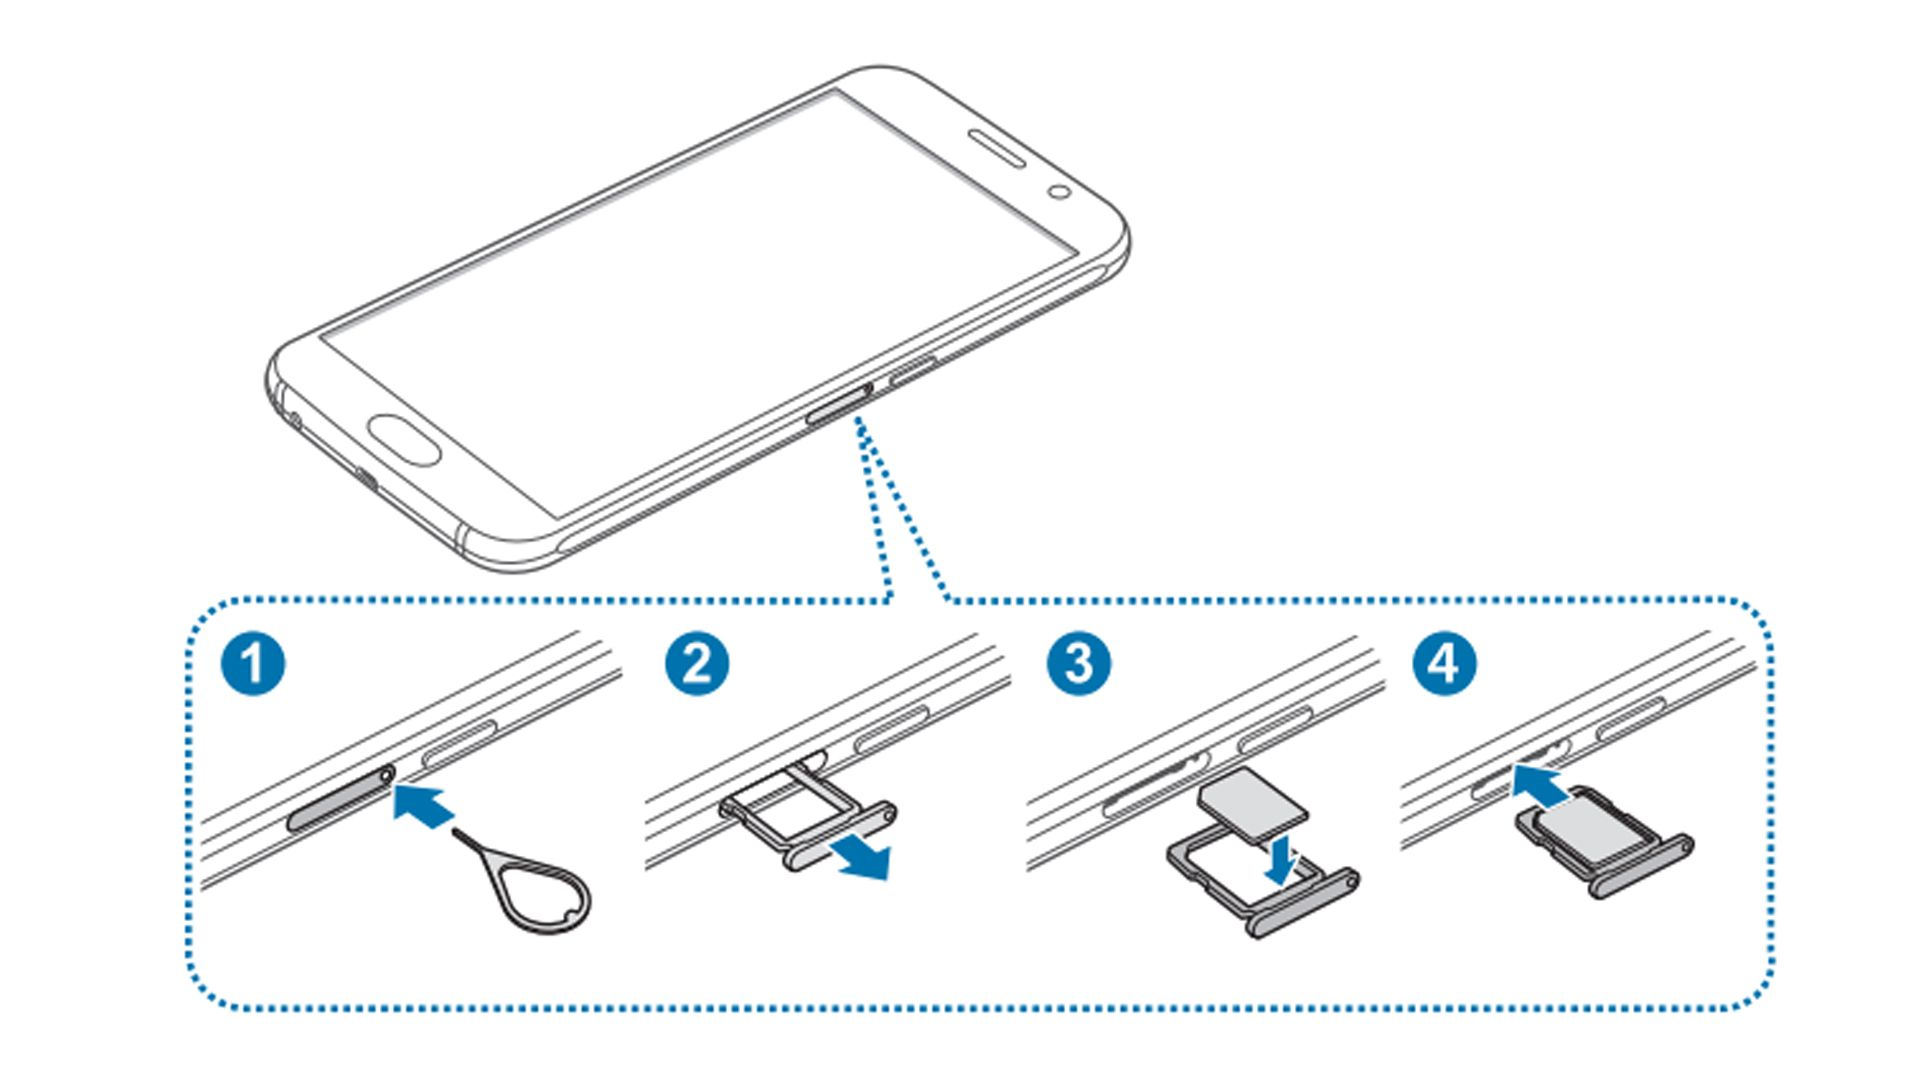 Samsung Galaxy S6 Edge: How to Insert or Remove a SIM Card